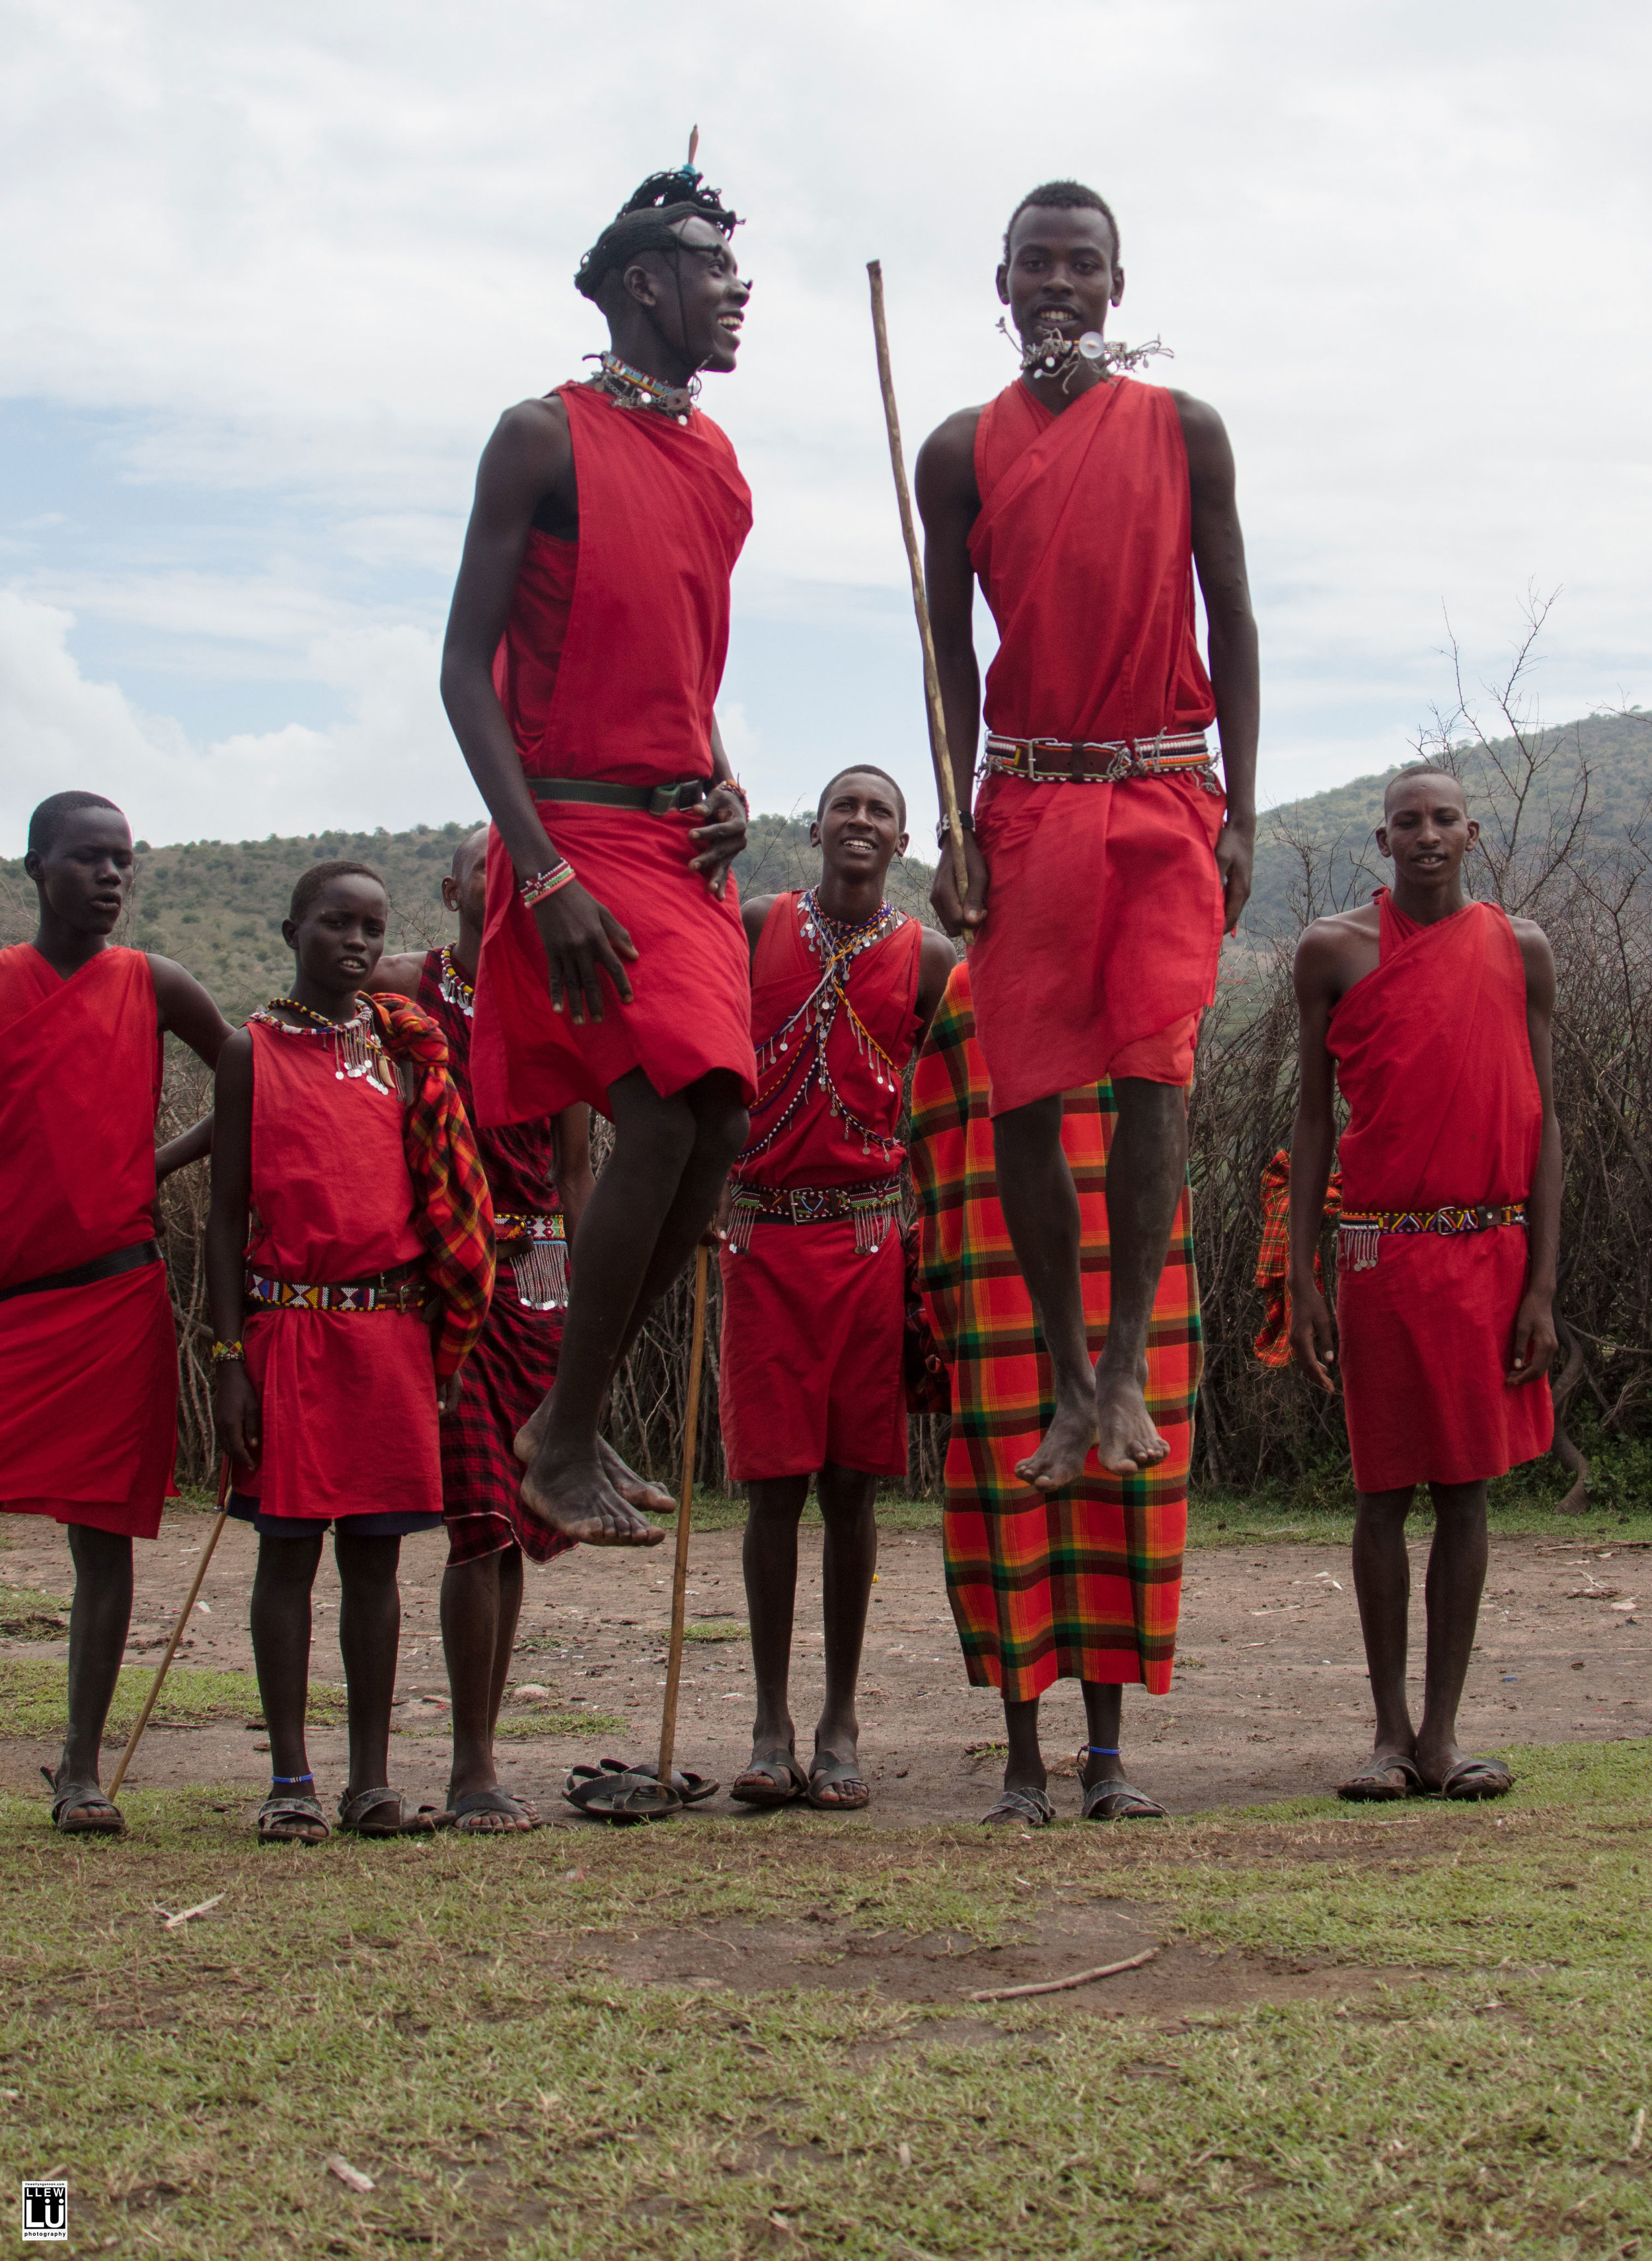 All part of their traditional Jumping Dance, a right of passage and a mating dance. It is for the young Maasai warrior to show his strength and attract a potential wife.